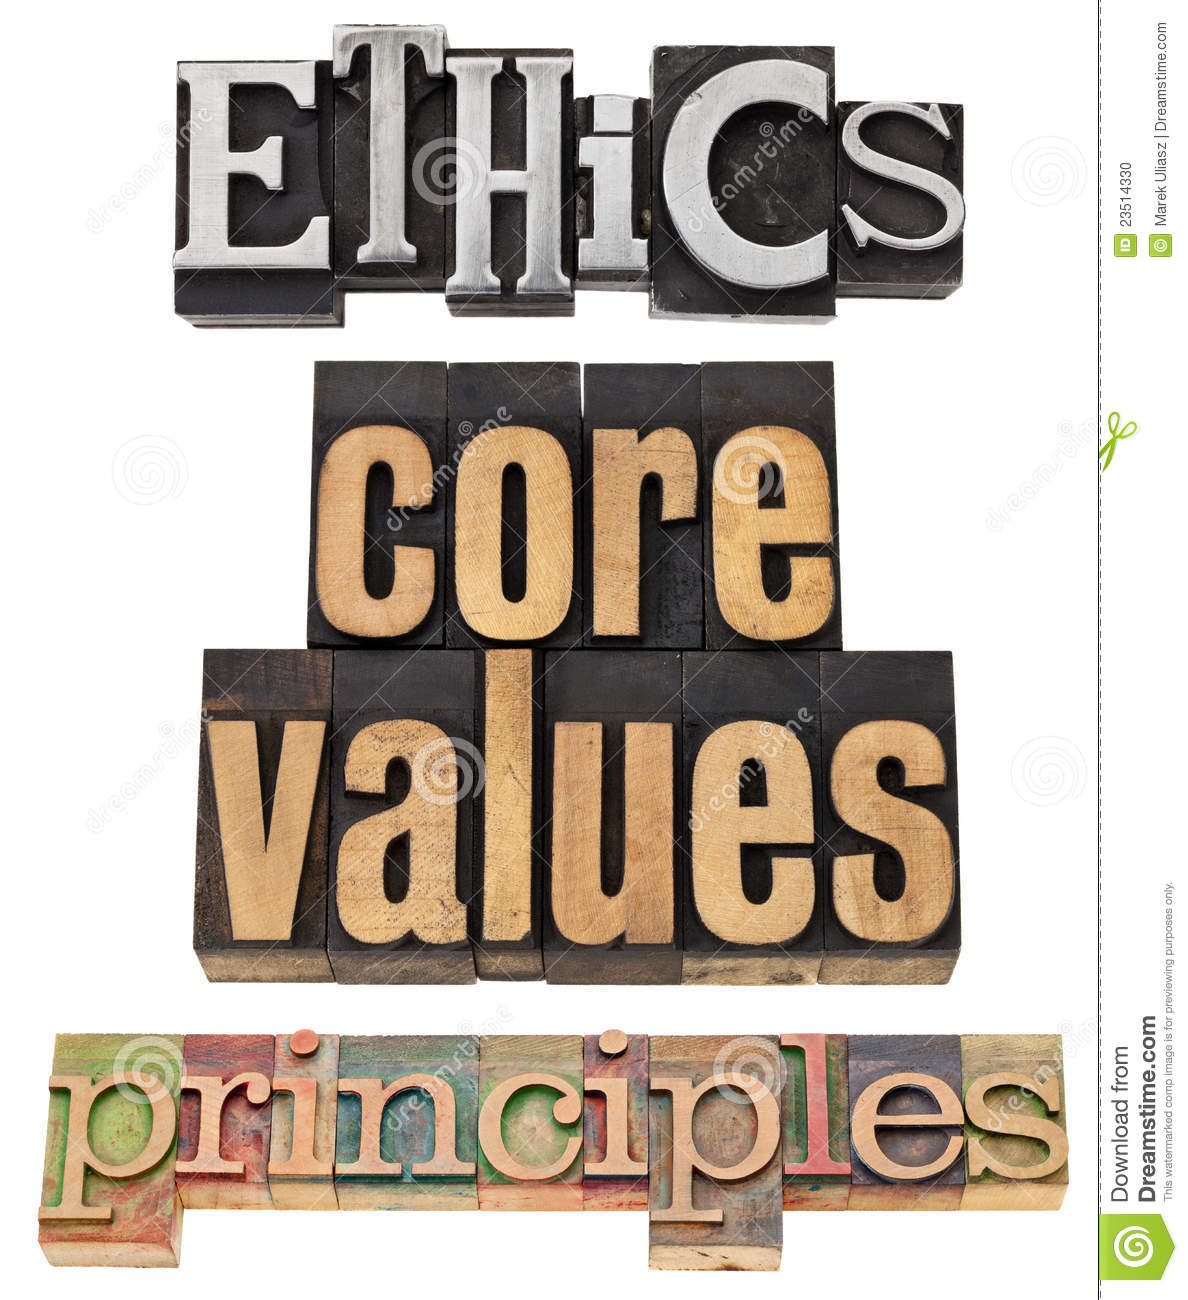 Ethics Core Values Principles   A Collage Of Isolated Words In